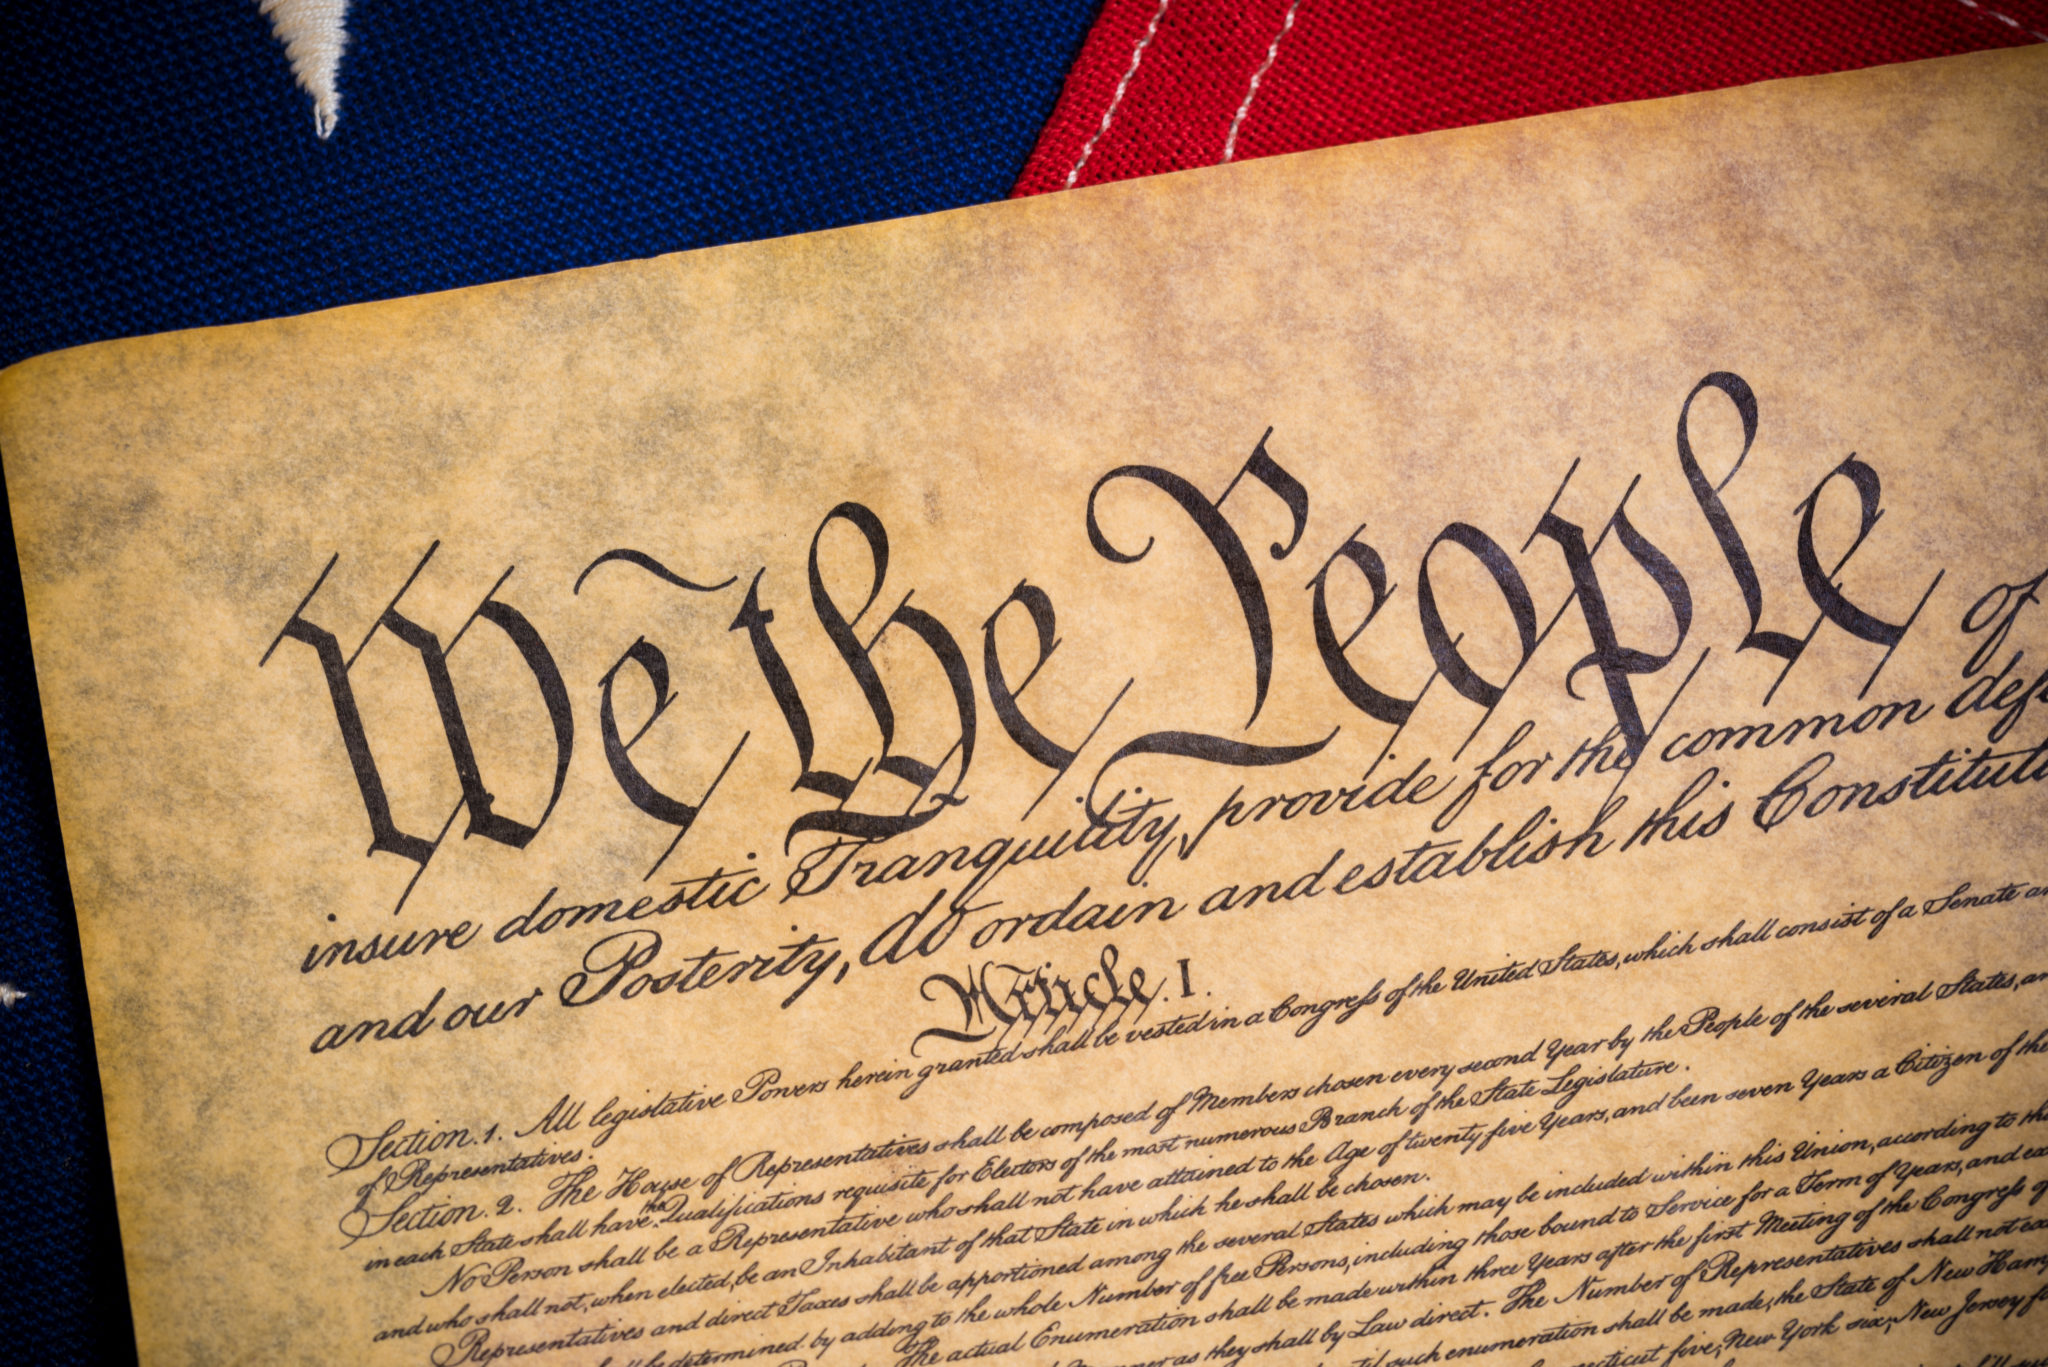 Constitution - We the People of the United States